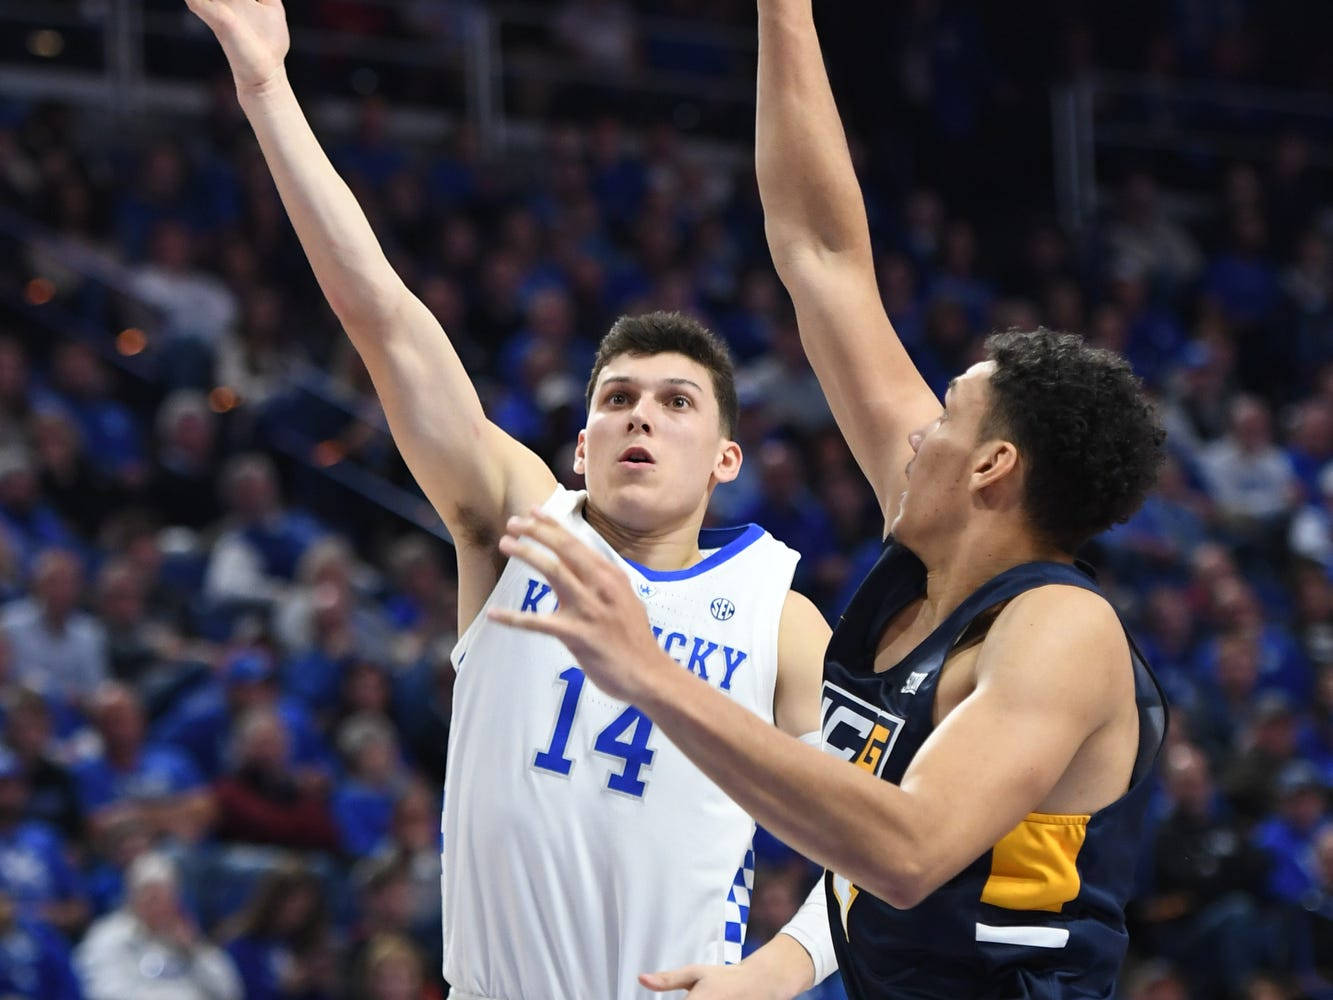 UK G Tyler Herro lays up the ball during the University of Kentucky men's basketball game against UNC Greensboro at Rupp Arena in Lexington, Kentucky on Saturday, December 1, 2018.